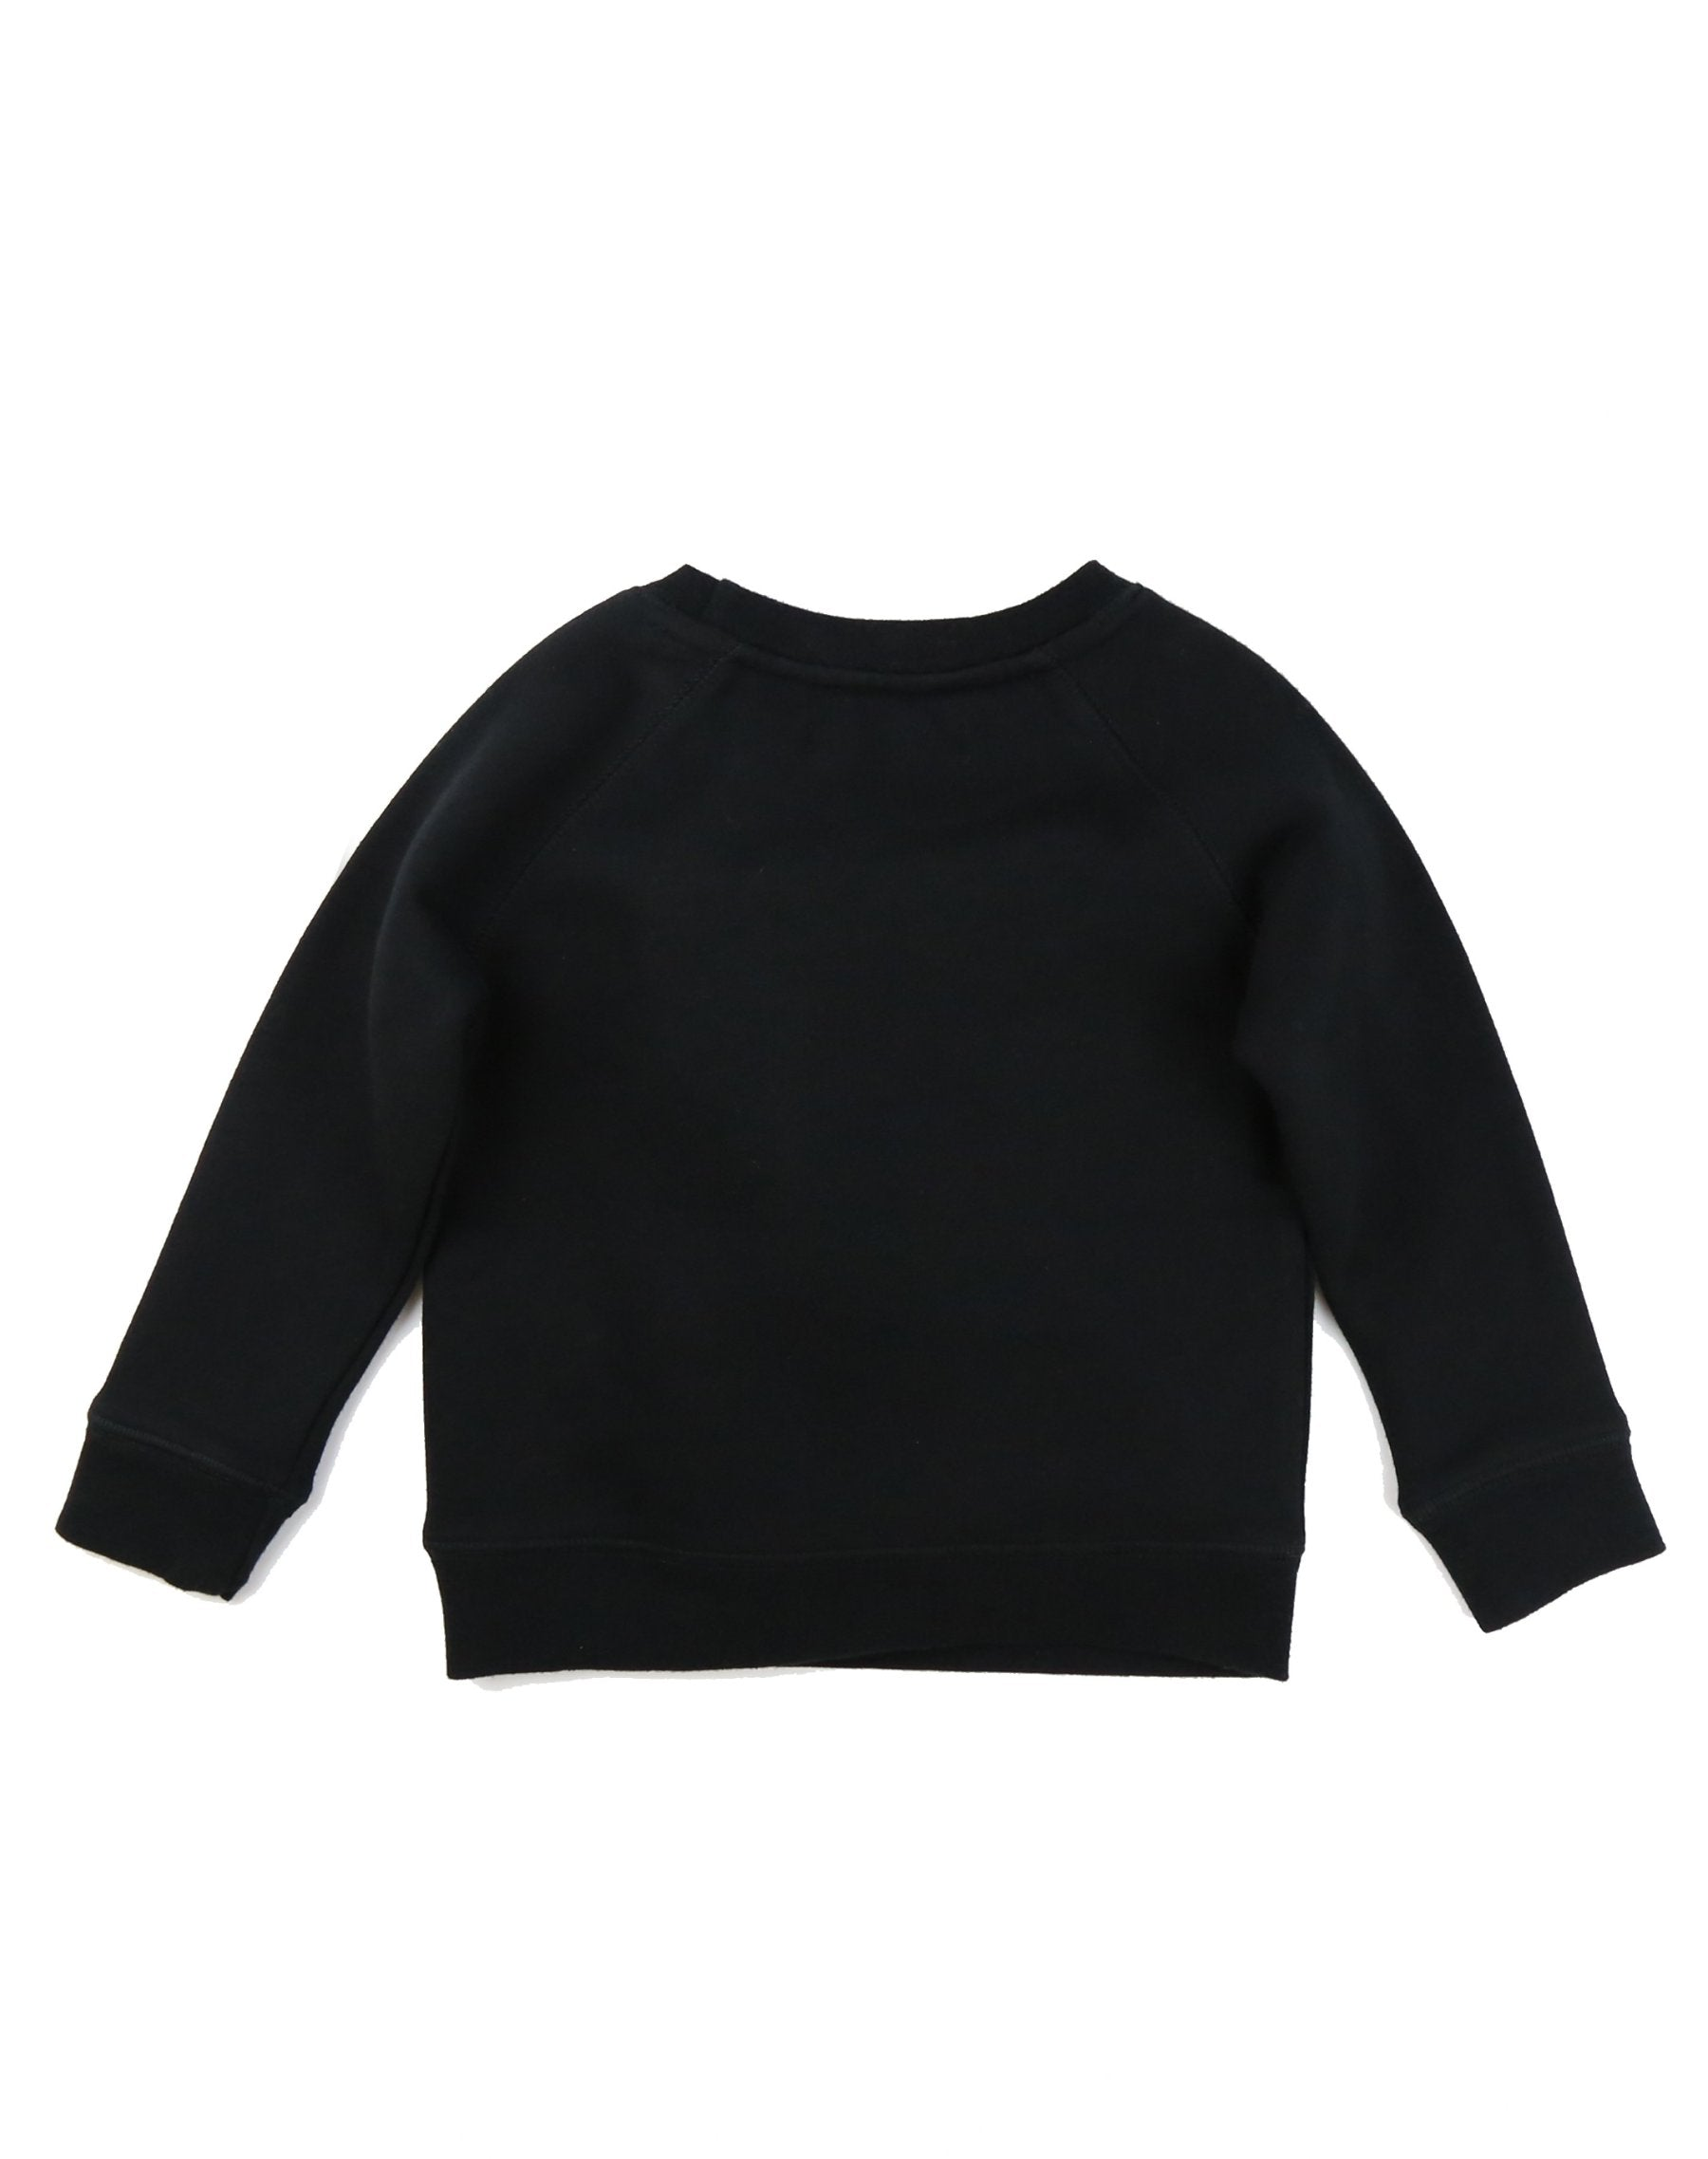 Photo of the back of the We Are All Babes Little Babes classic crew neck sweatshirt in black by Brunette the Label.